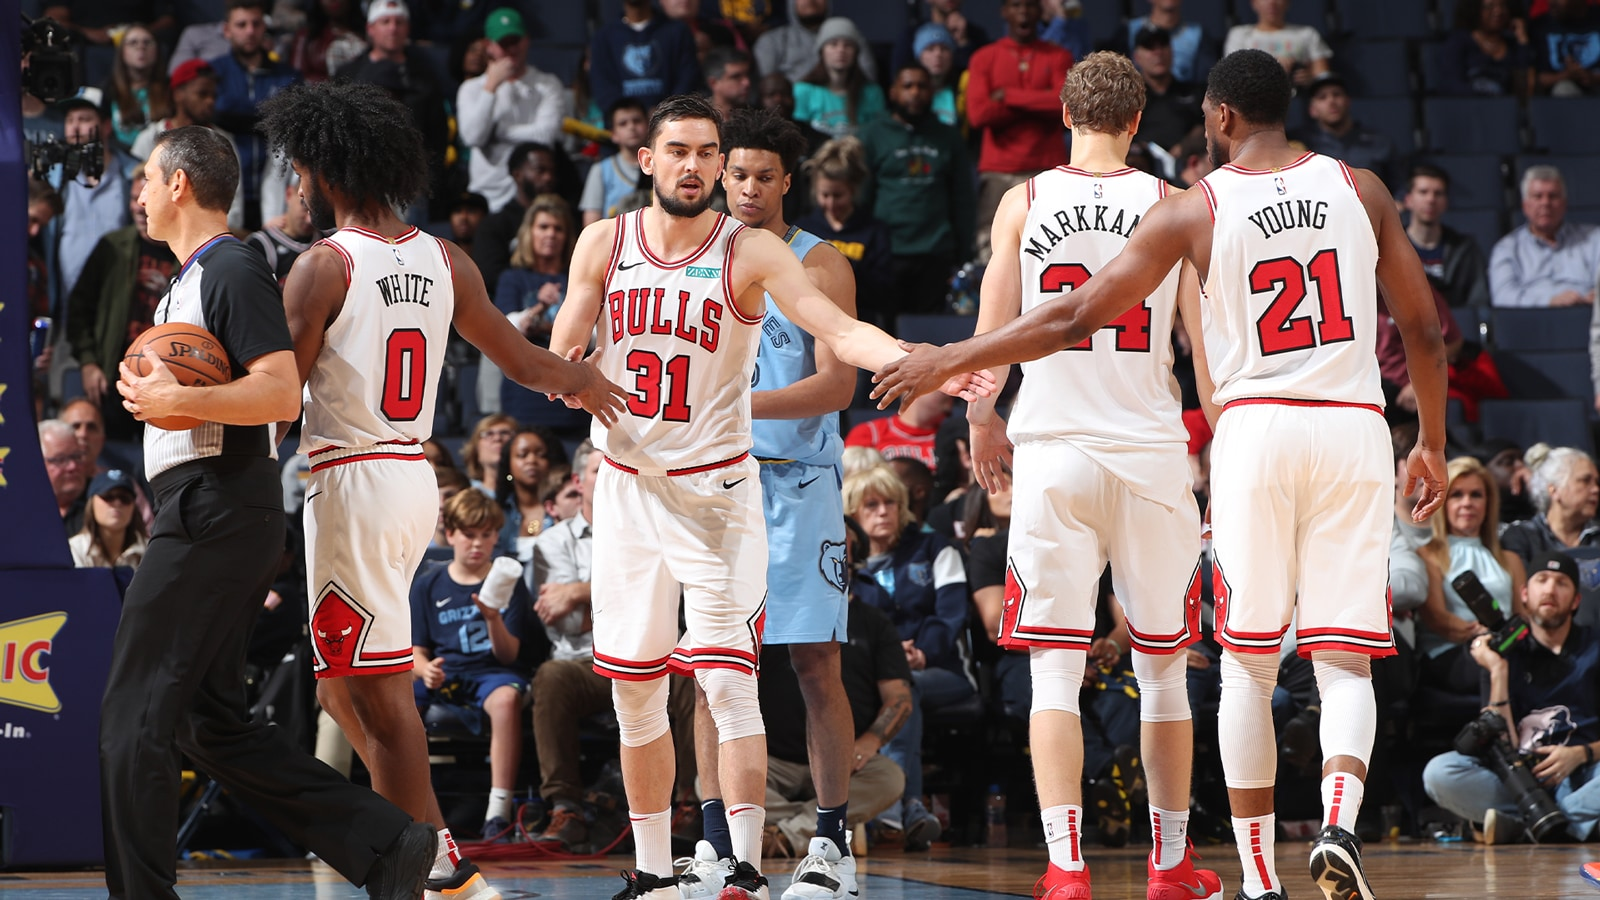 Bulls team come together during play